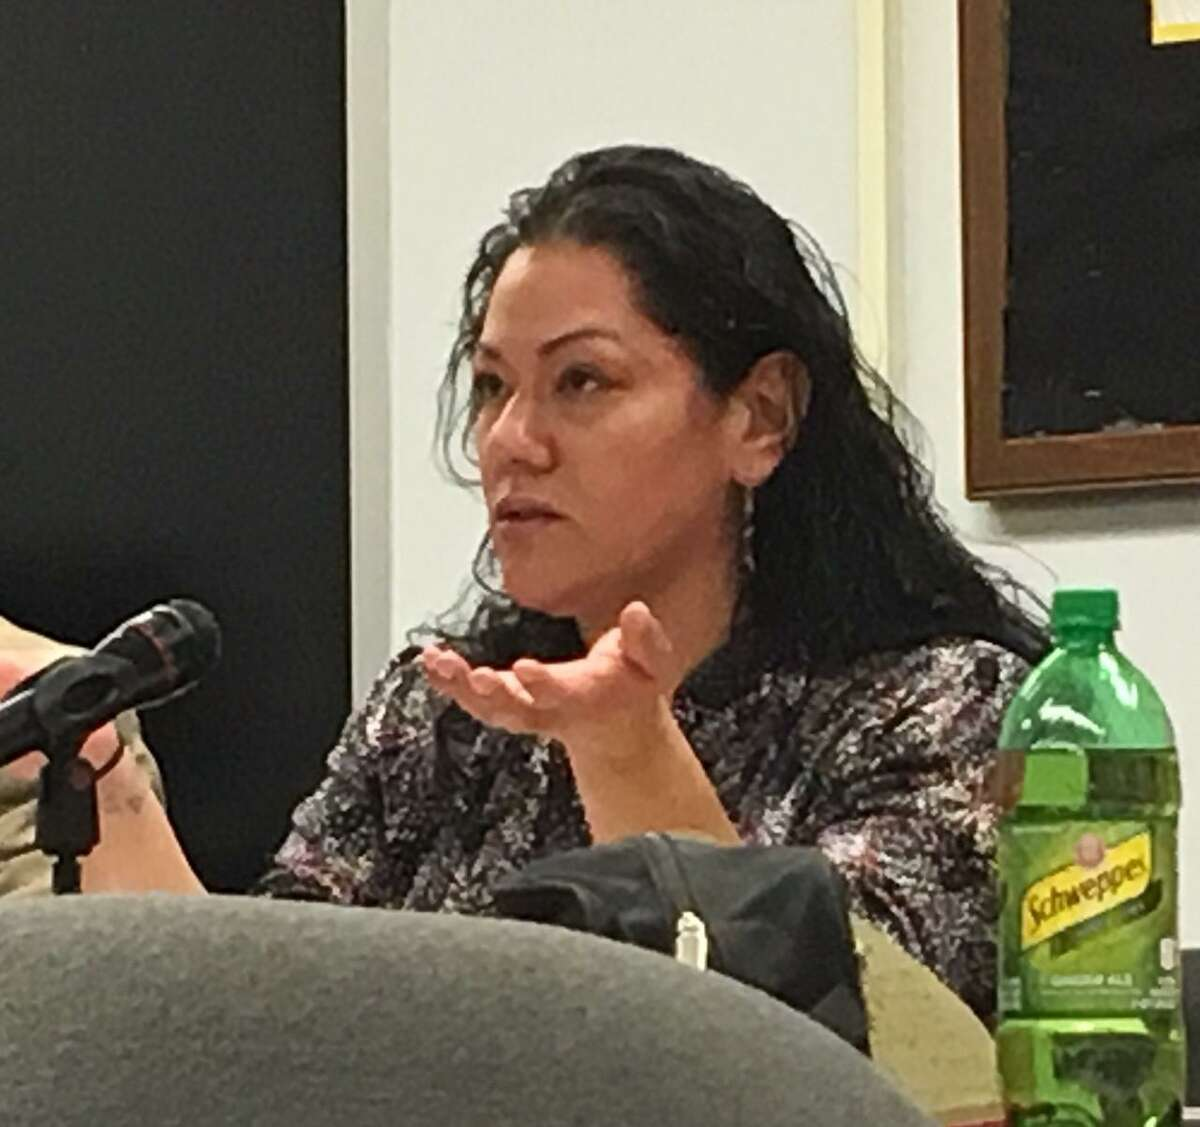 Jessica Martinez at Board of Education meeting on Jan. 15.